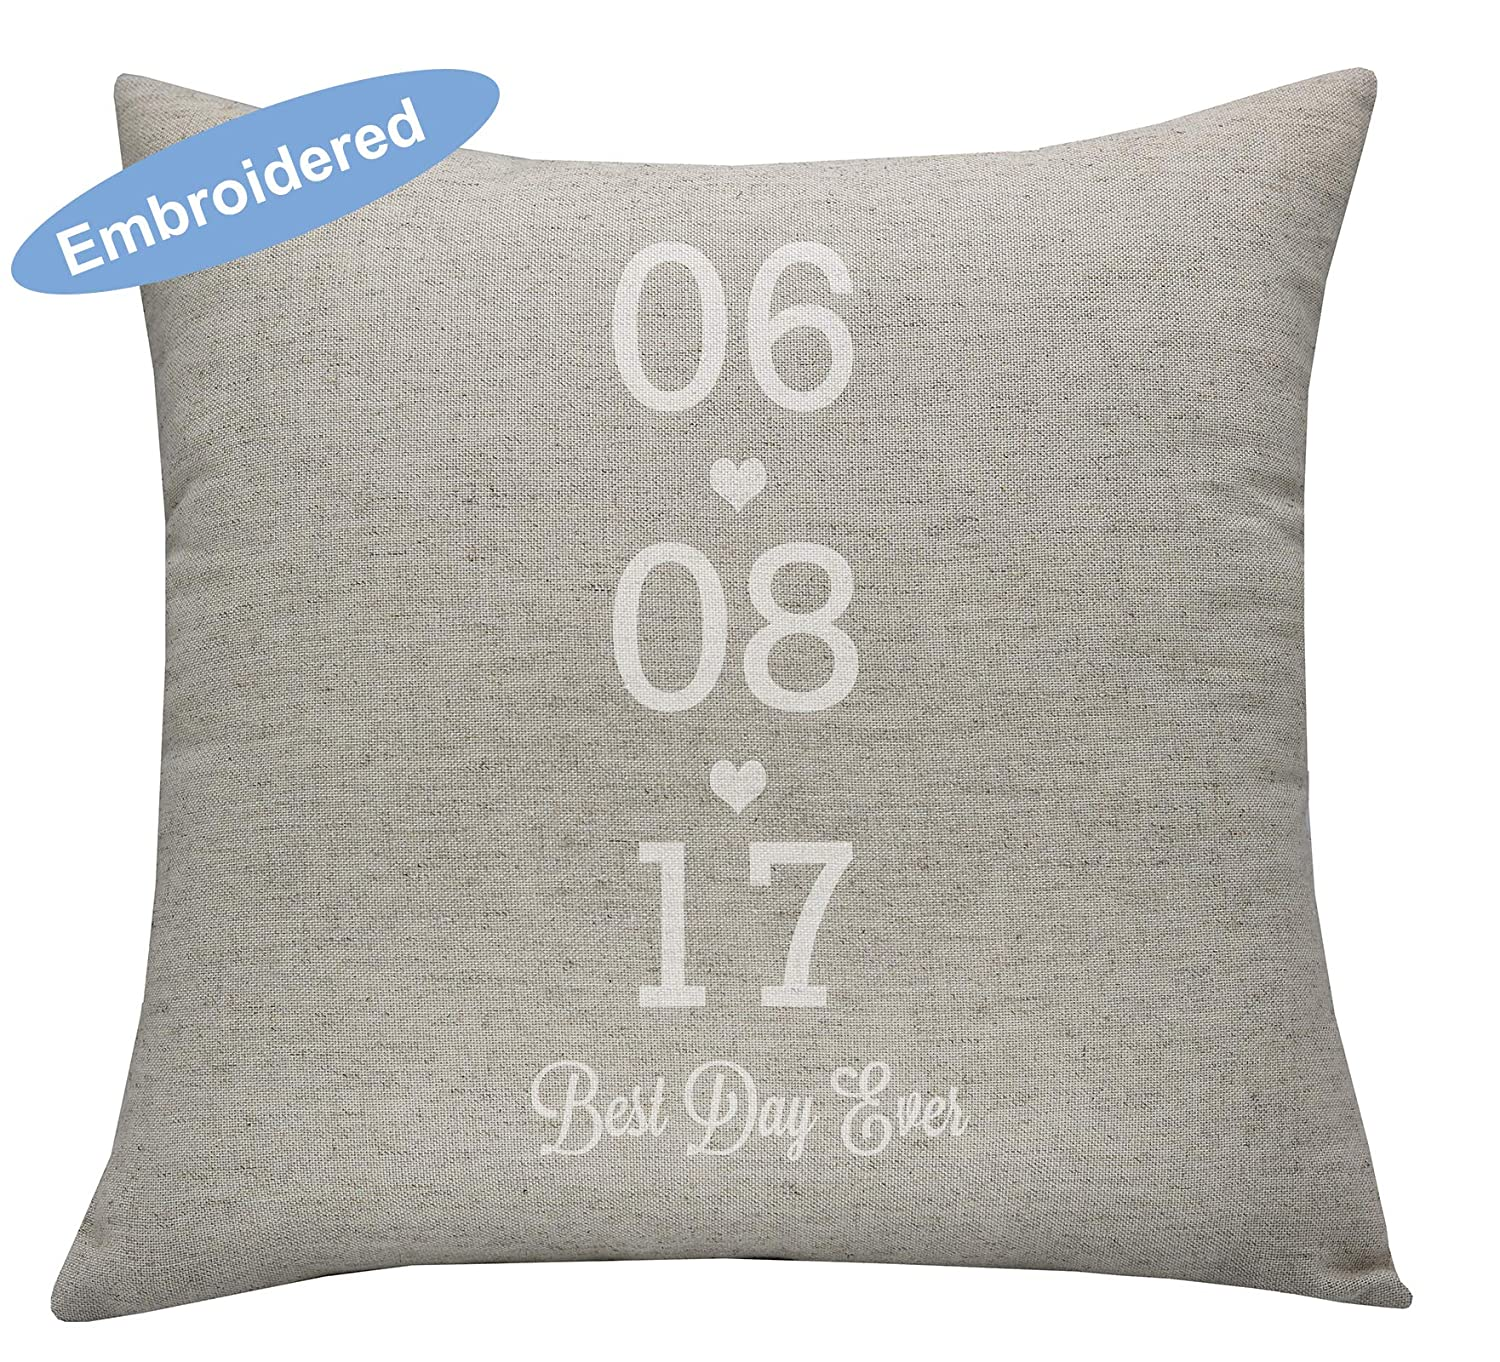 YugTex Pillowcases Best Day ever Embroidered Pillow Cover, Christmas Gifts, Bridal Shower Gift, Personalized Husband Gift, Groom Gift, Bride Gift, Lovers Gift, Valentines Gift,best day date pillow